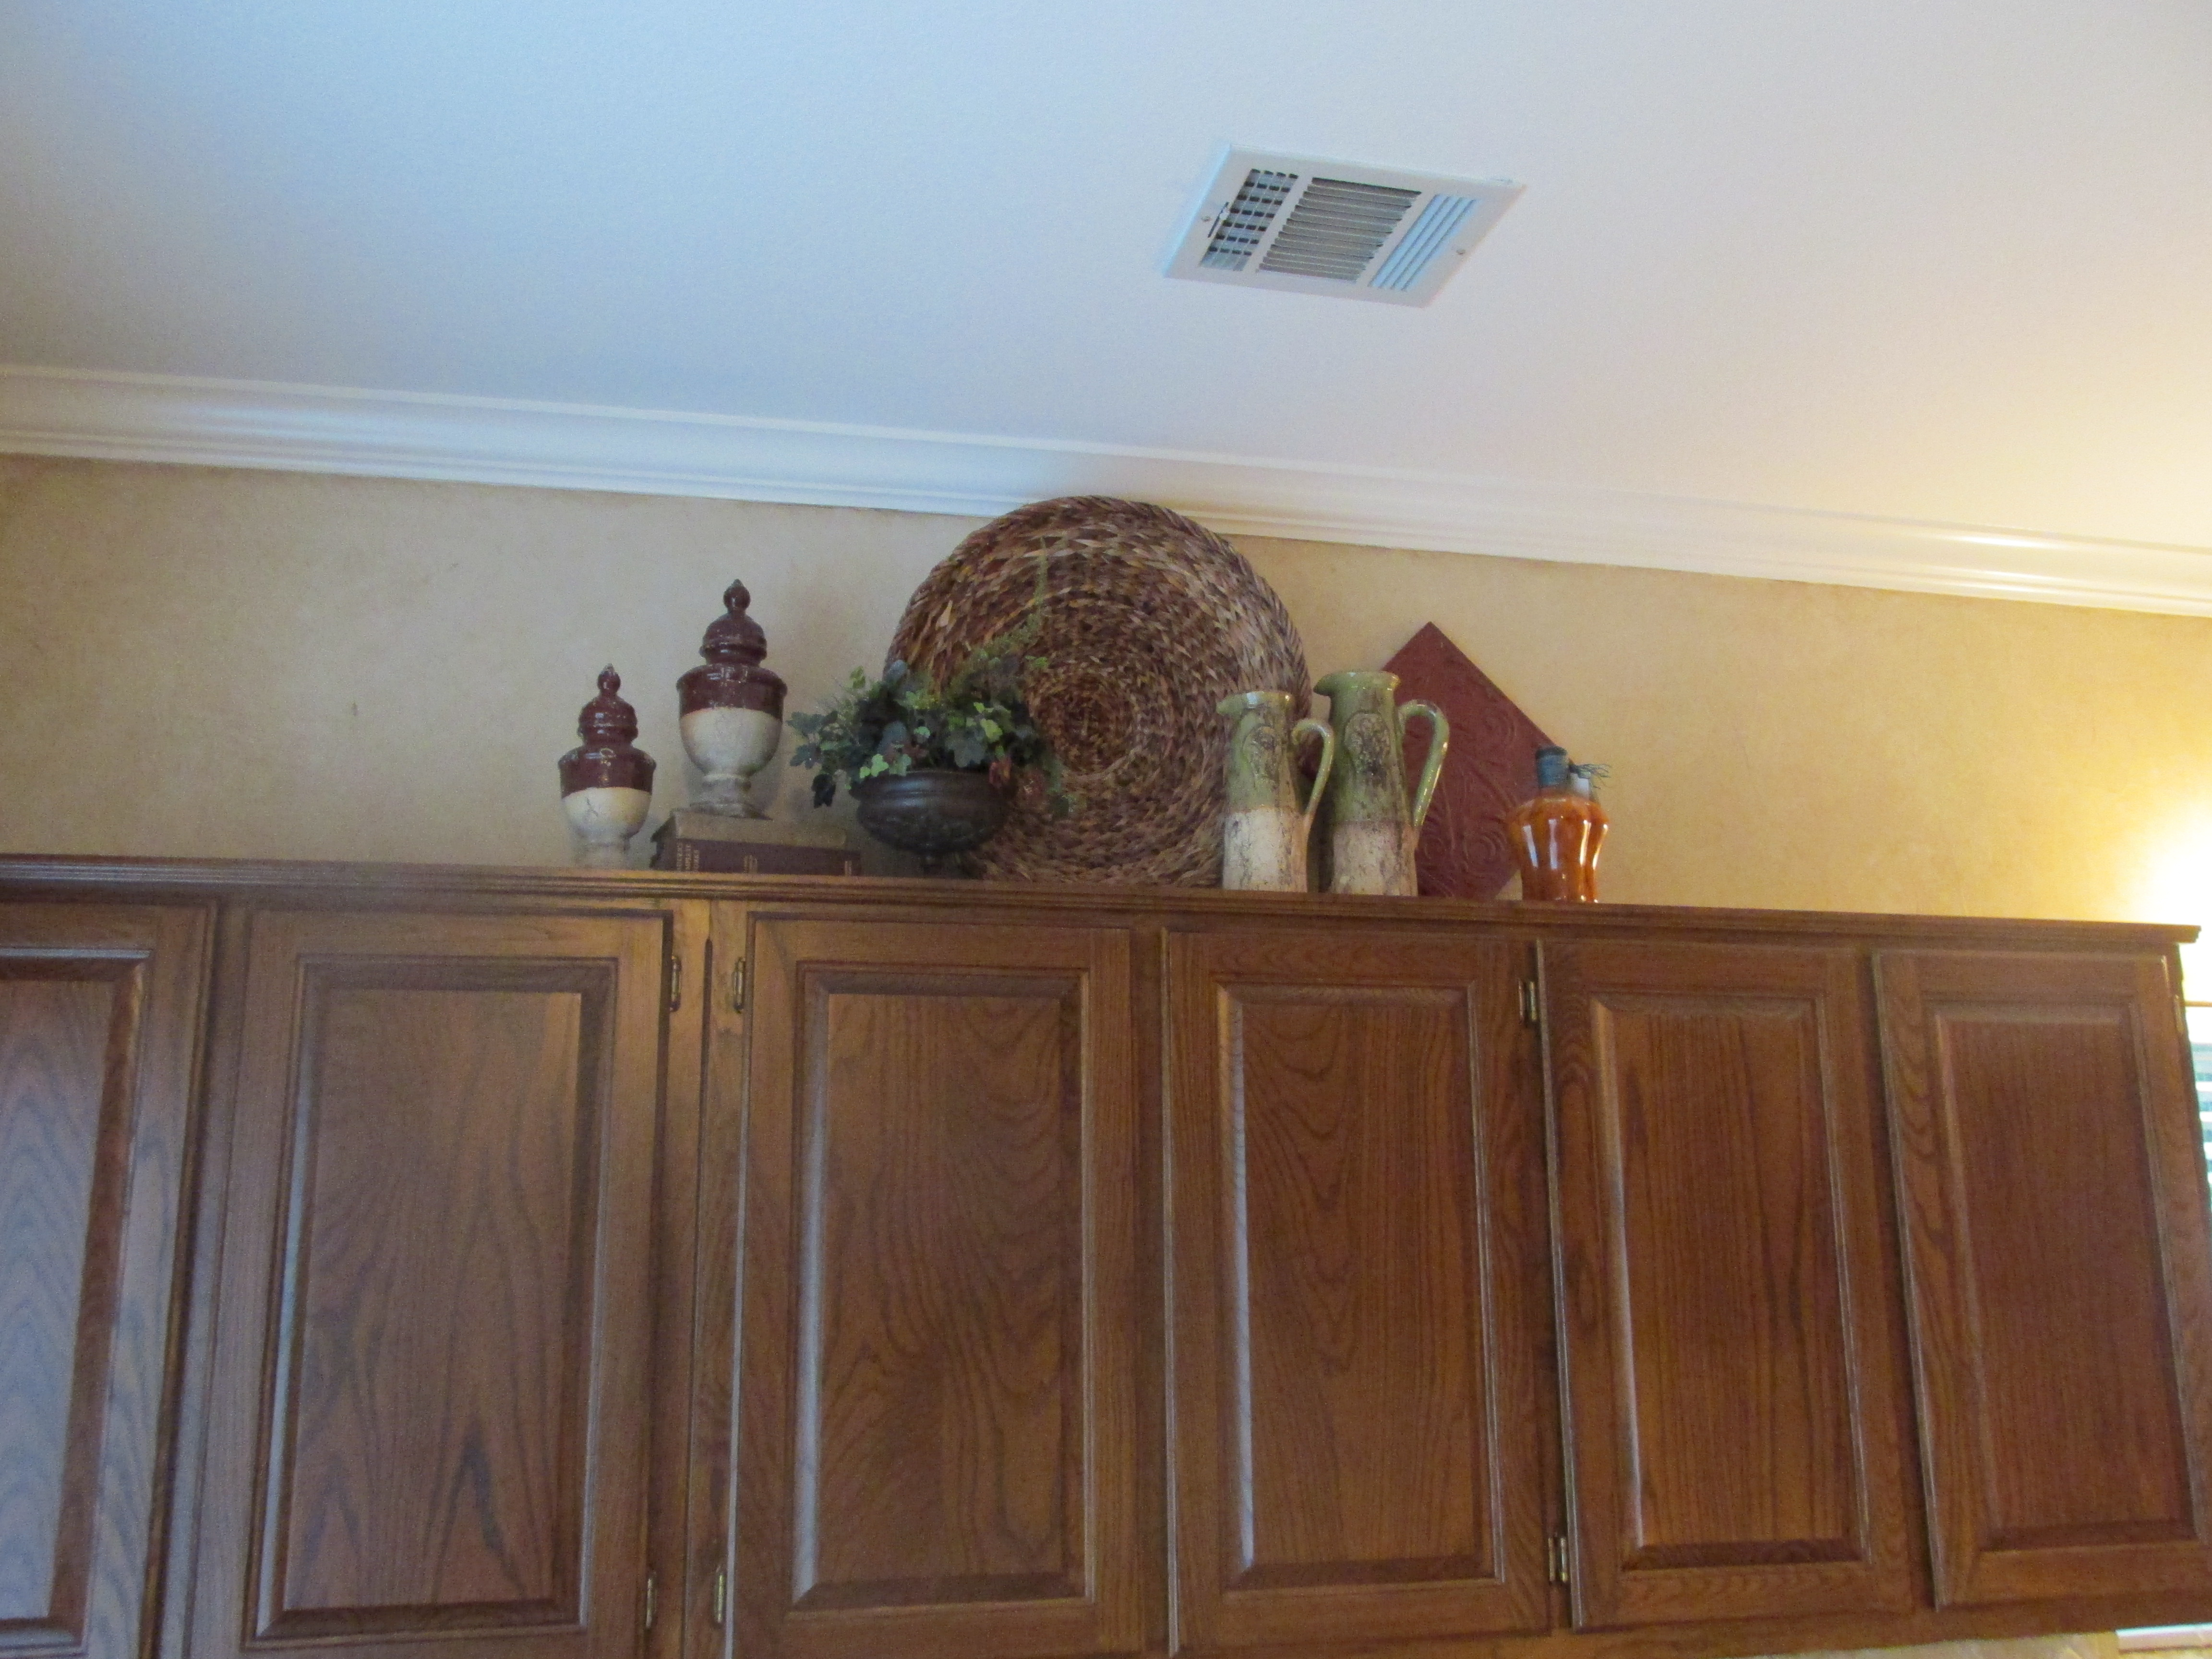 greenery above kitchen cabinets f the cabinetbefore and after  it 39s simply yours